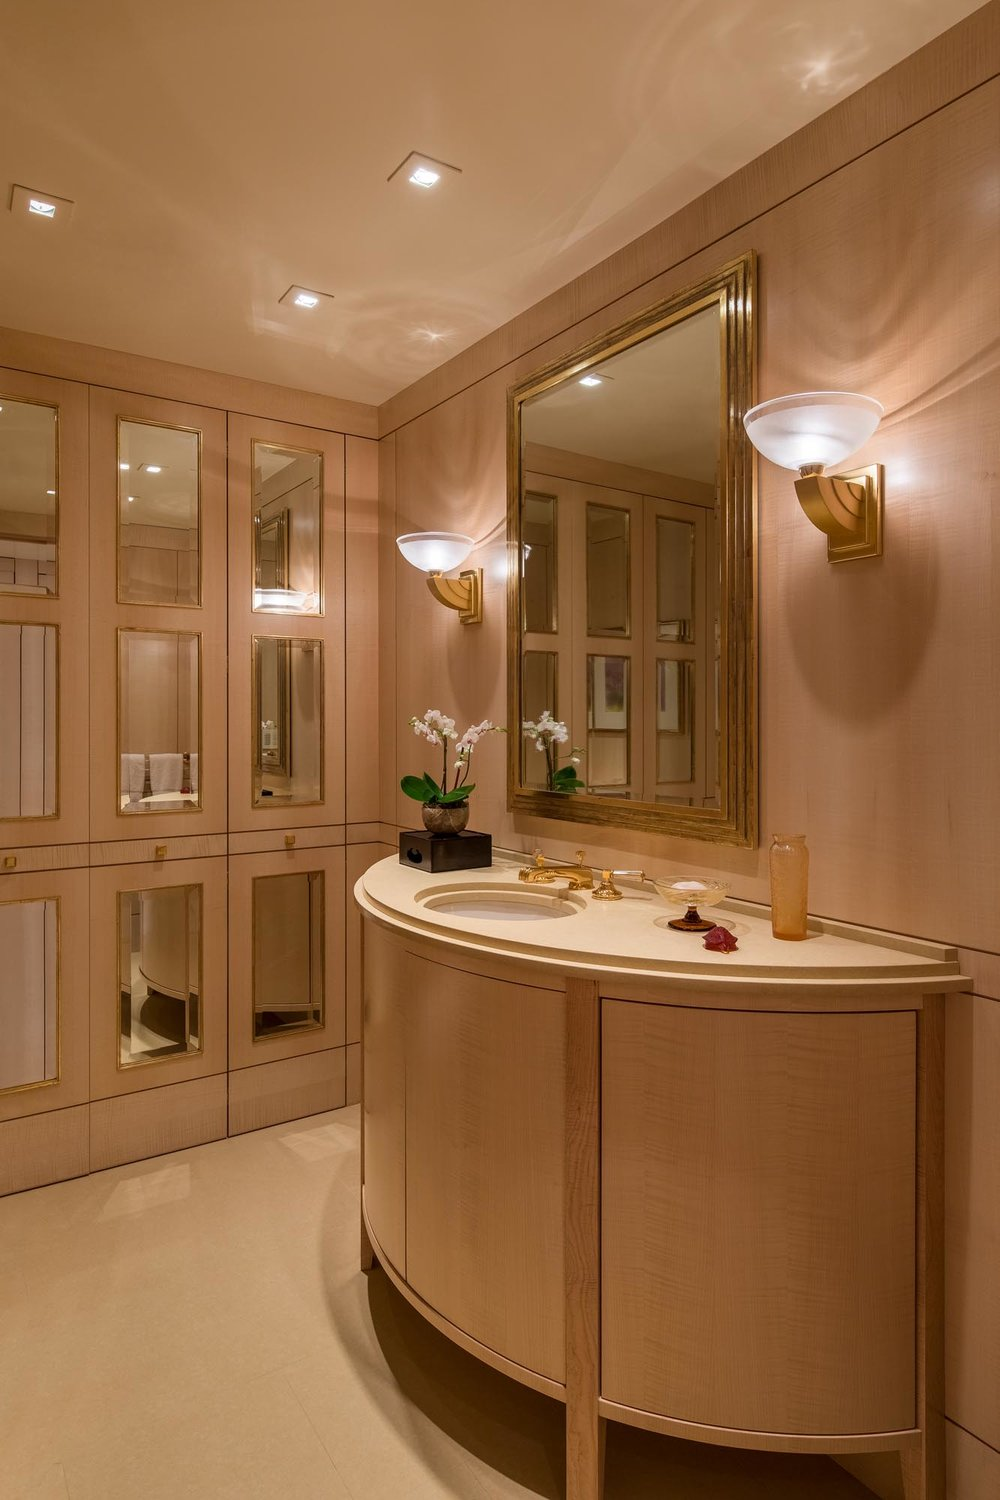 Bathroom interior with cabinet, countertop and mirror on wall